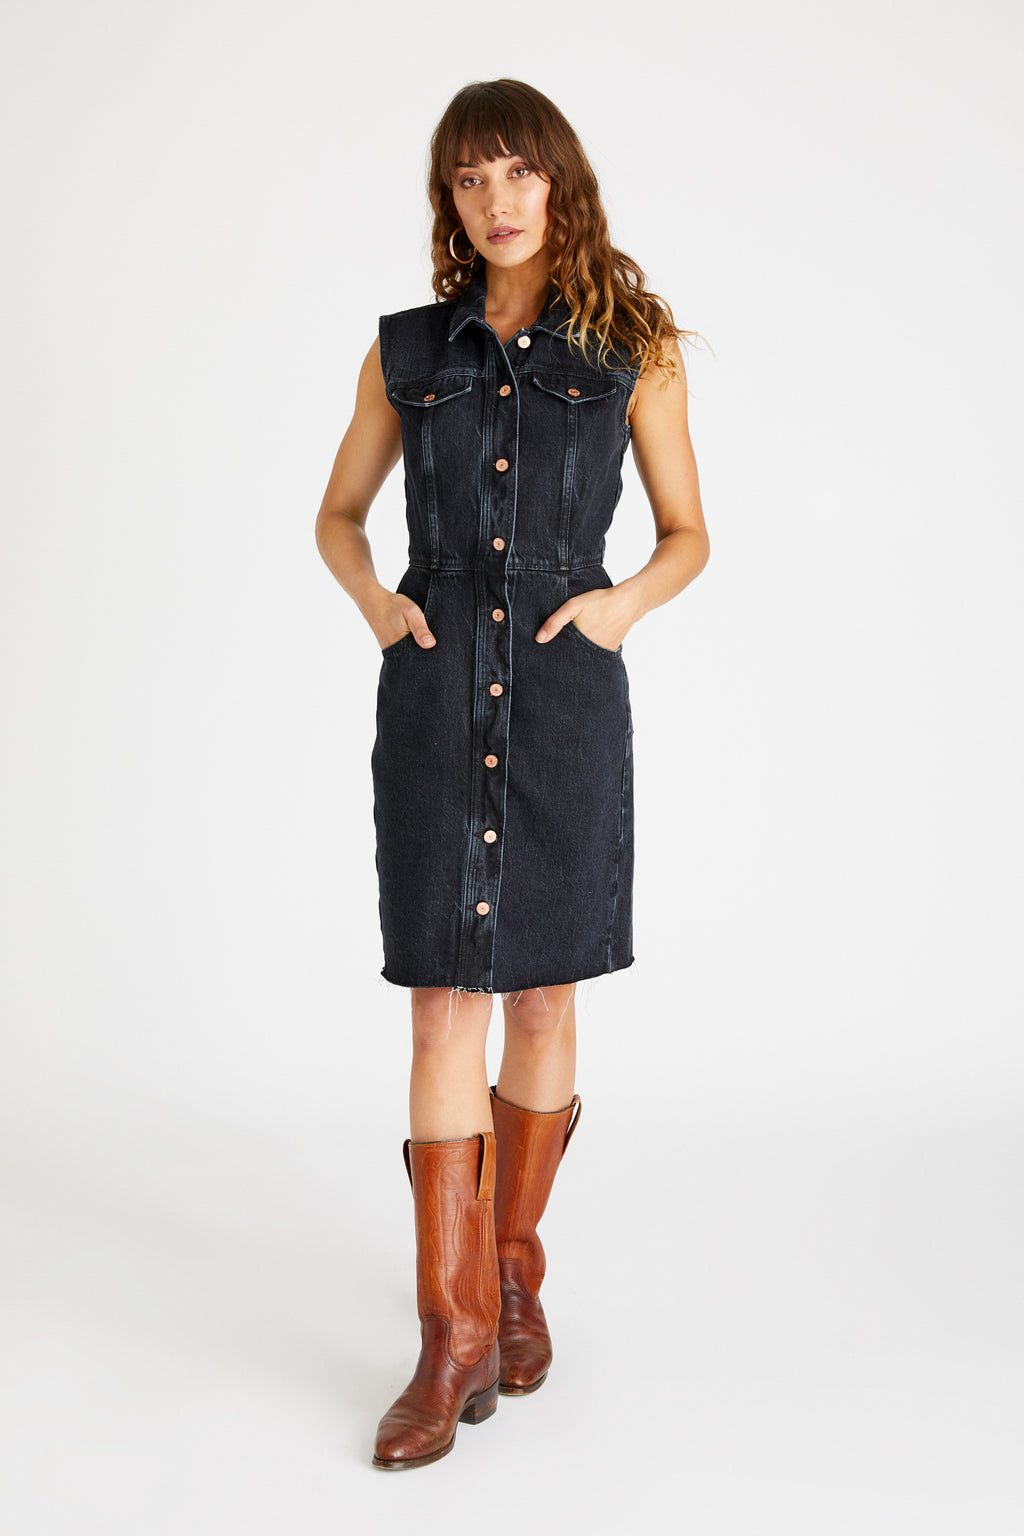 Jori Sleeveless Denim Dress - Obsidian